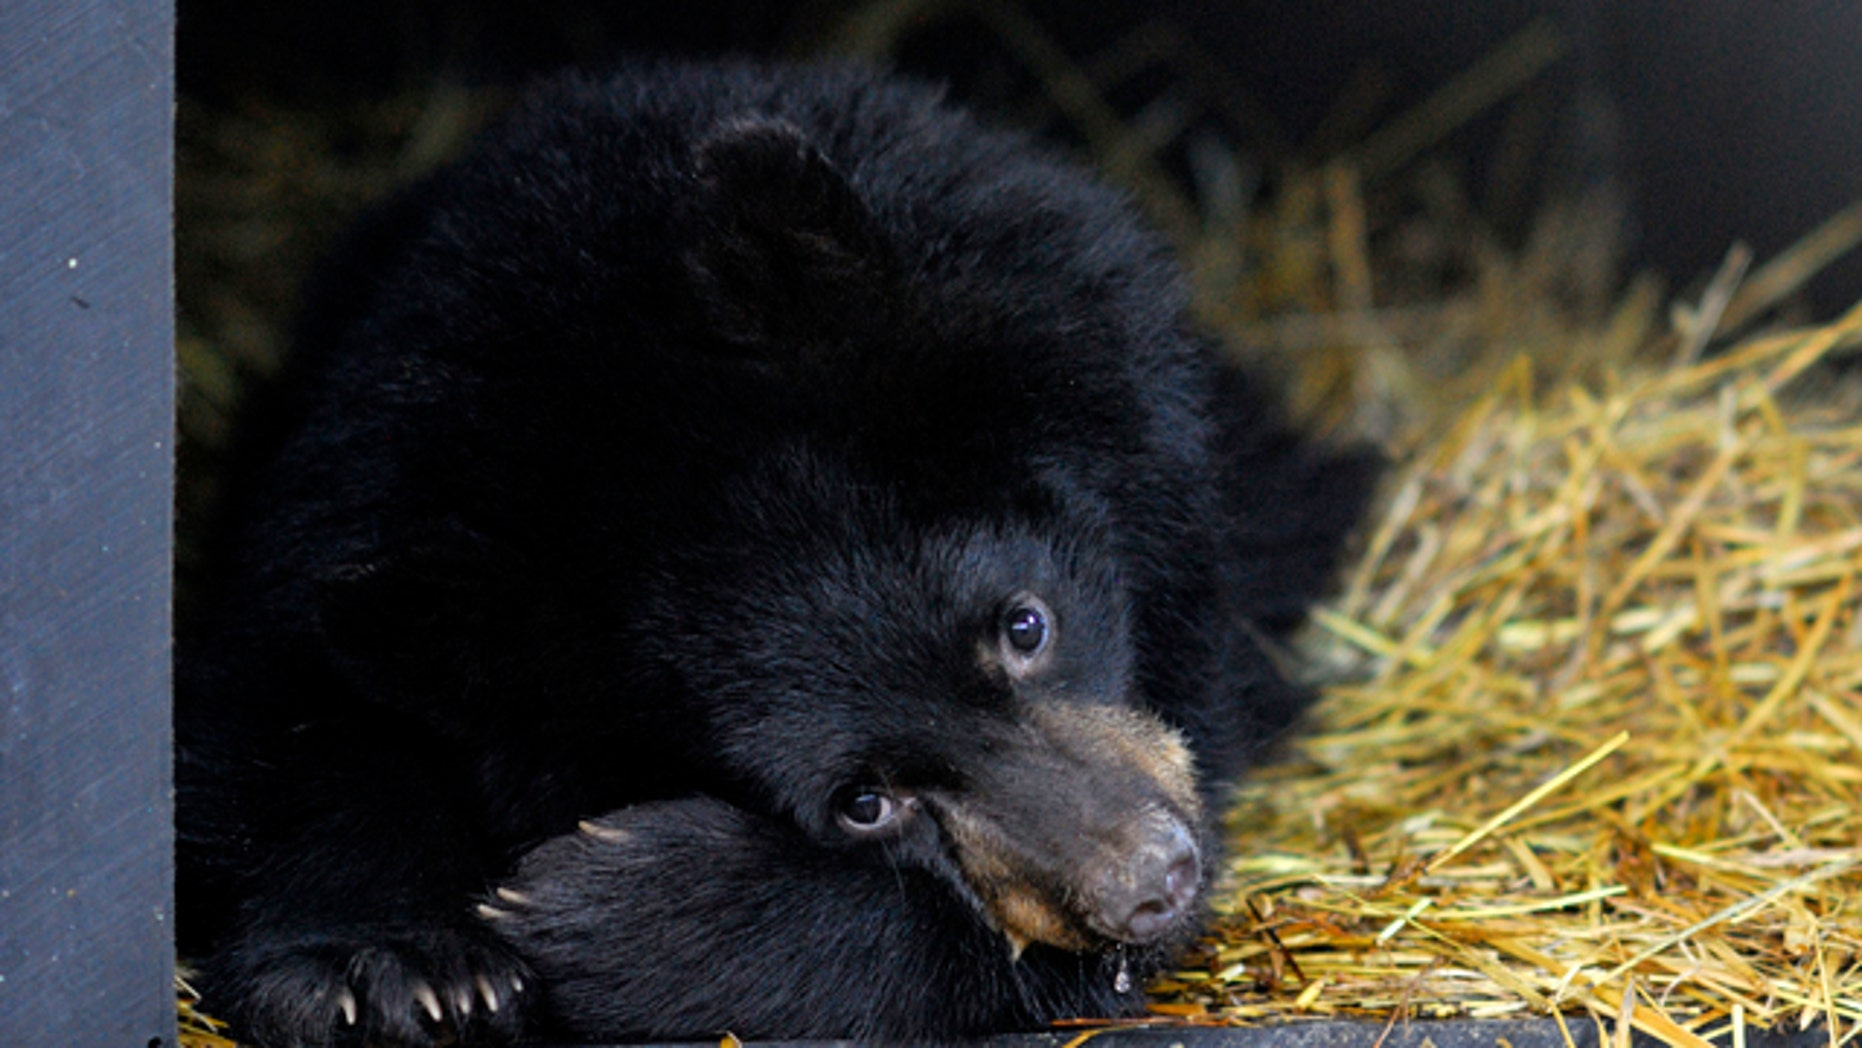 Hibernating bears -- like this American Black Bear -- set their energy demands to low, but they don't chill out very much, according to new research.